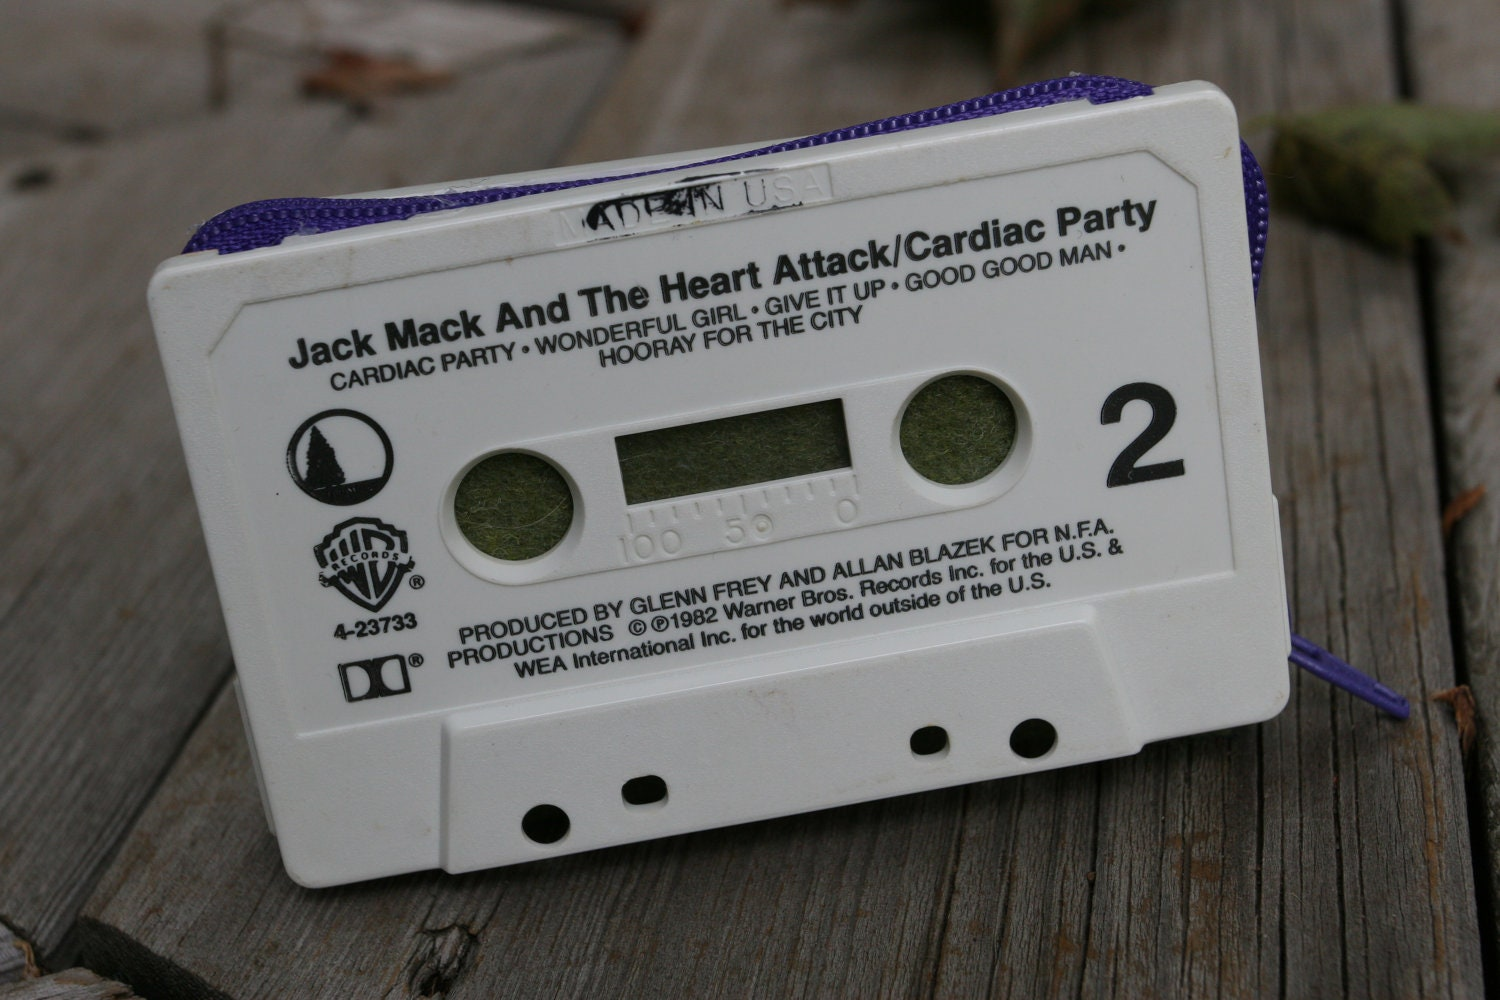 Jack Mack and the Heart Attack/ Cardiac Party- cassette tape wallet